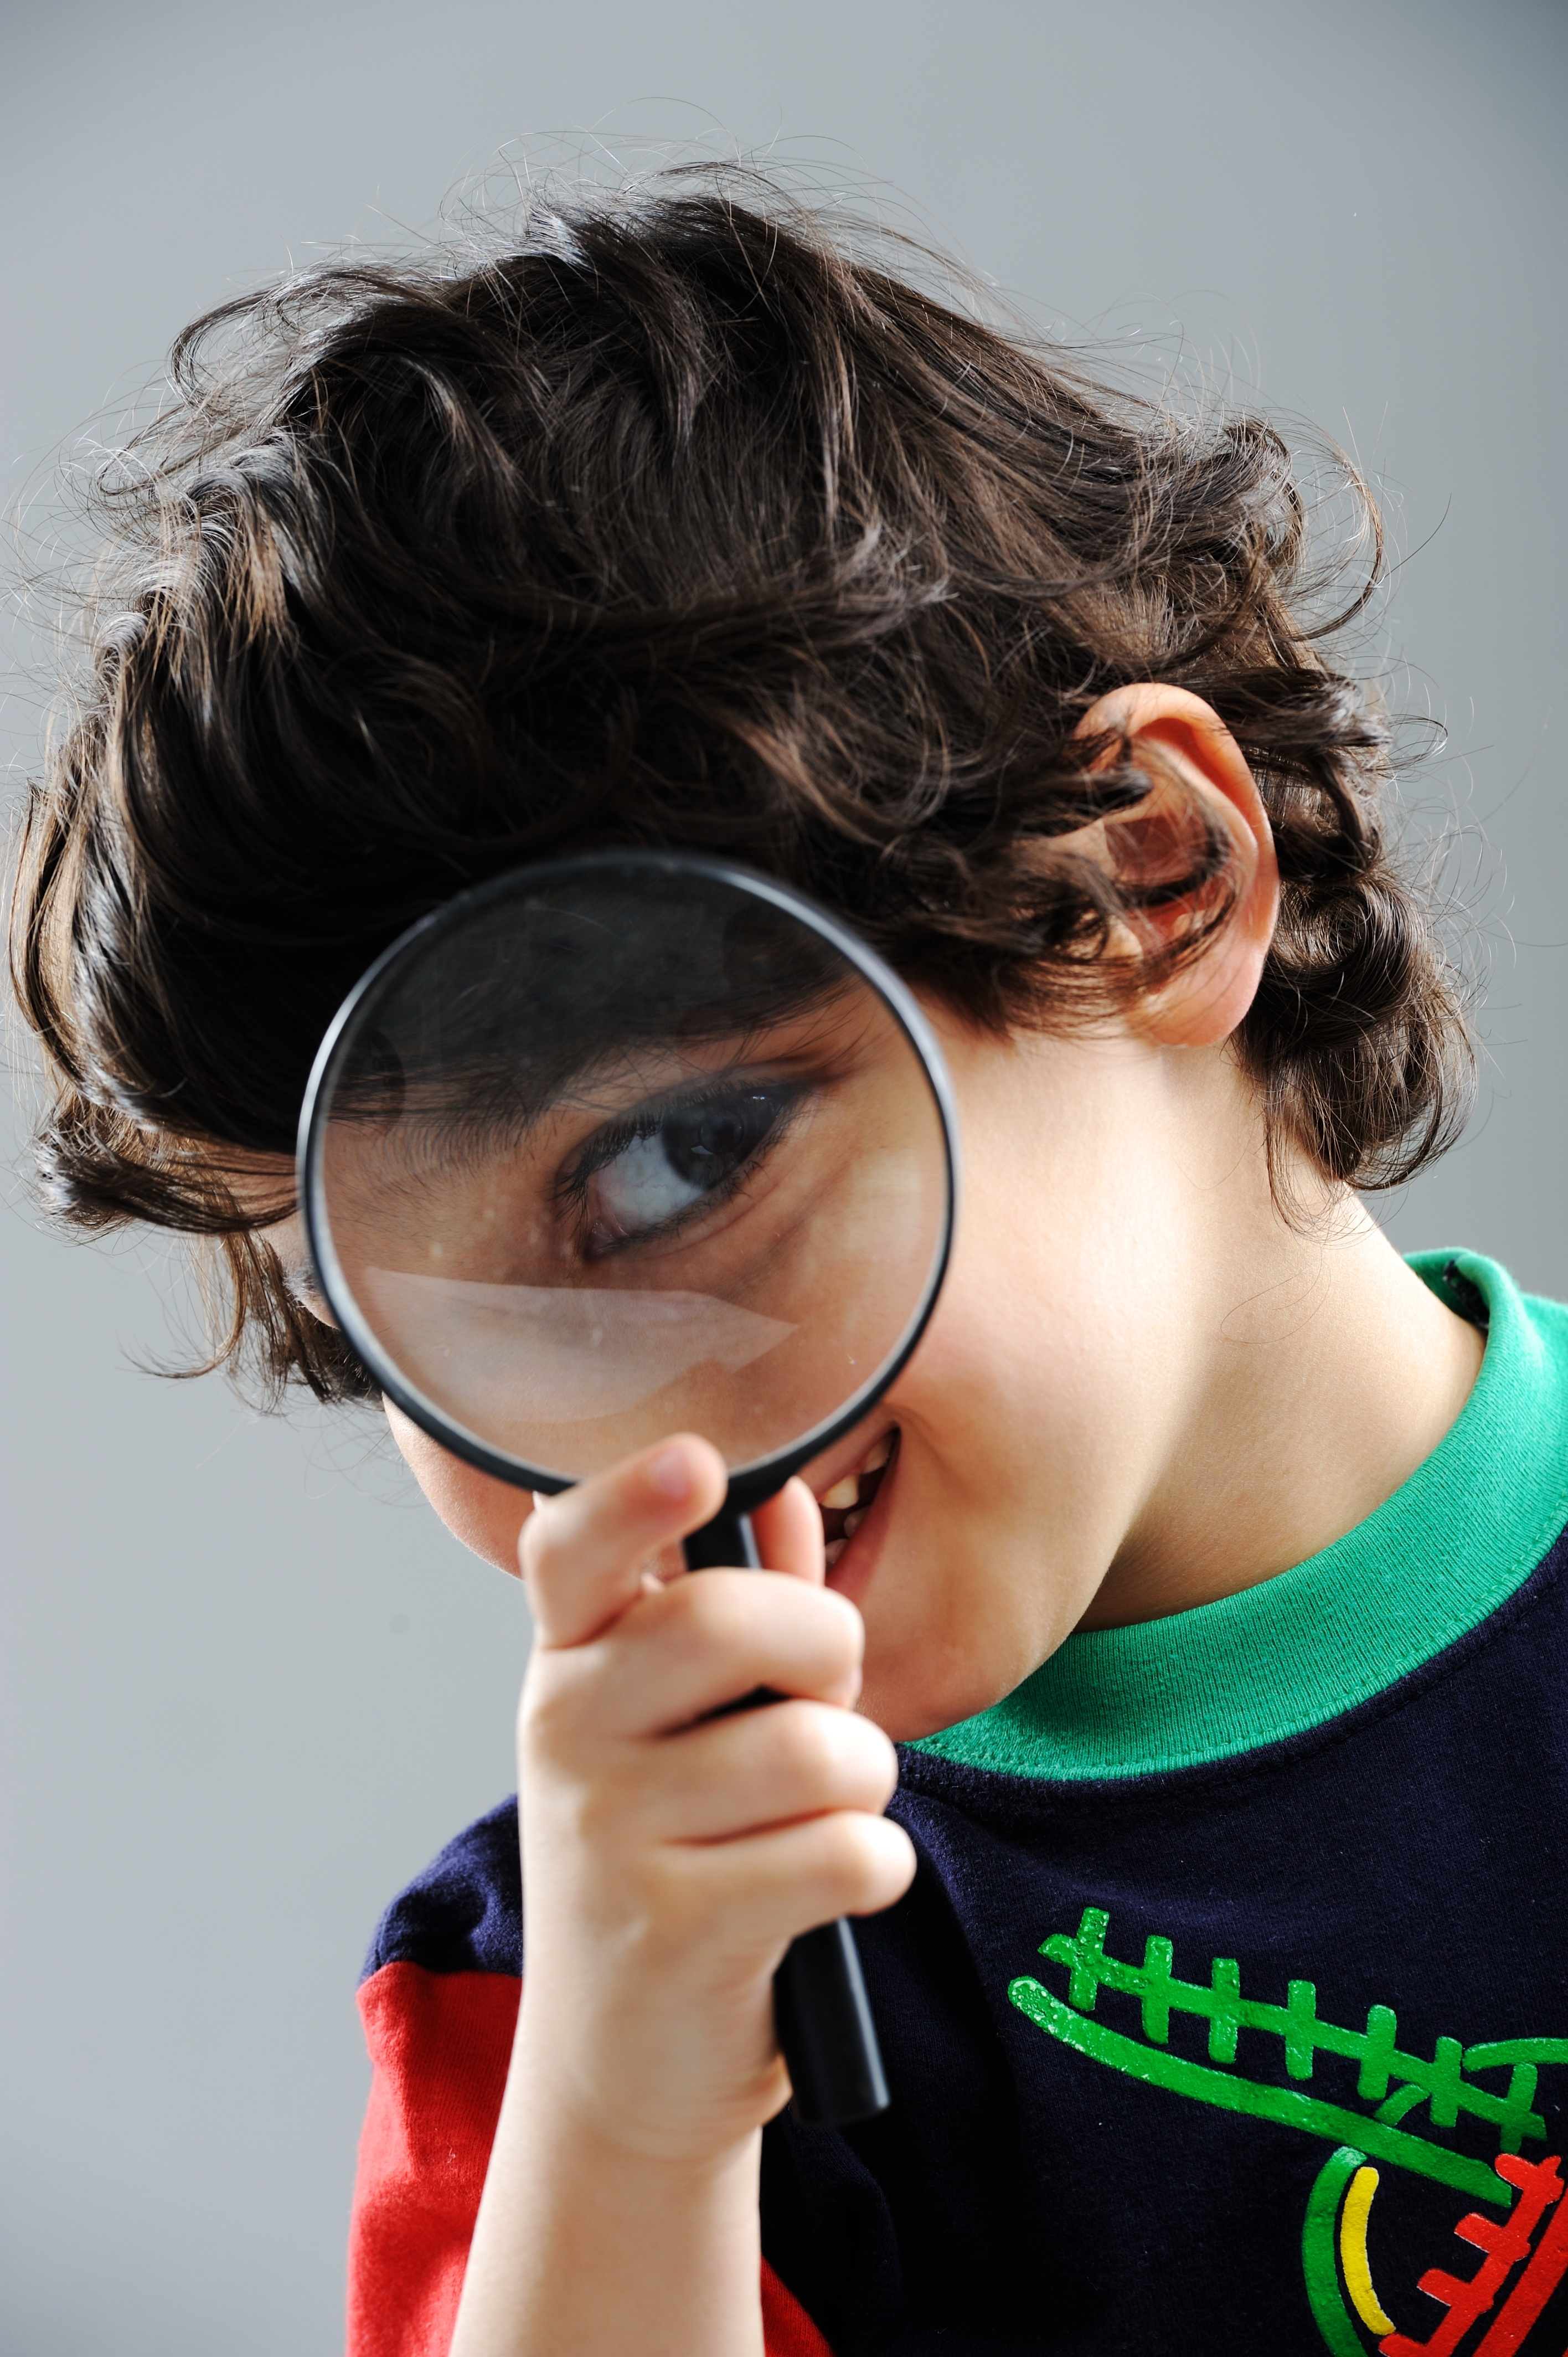 portrait-of-child-looking-closely-with-magnifying-glass_rtOSTyCro.jpg